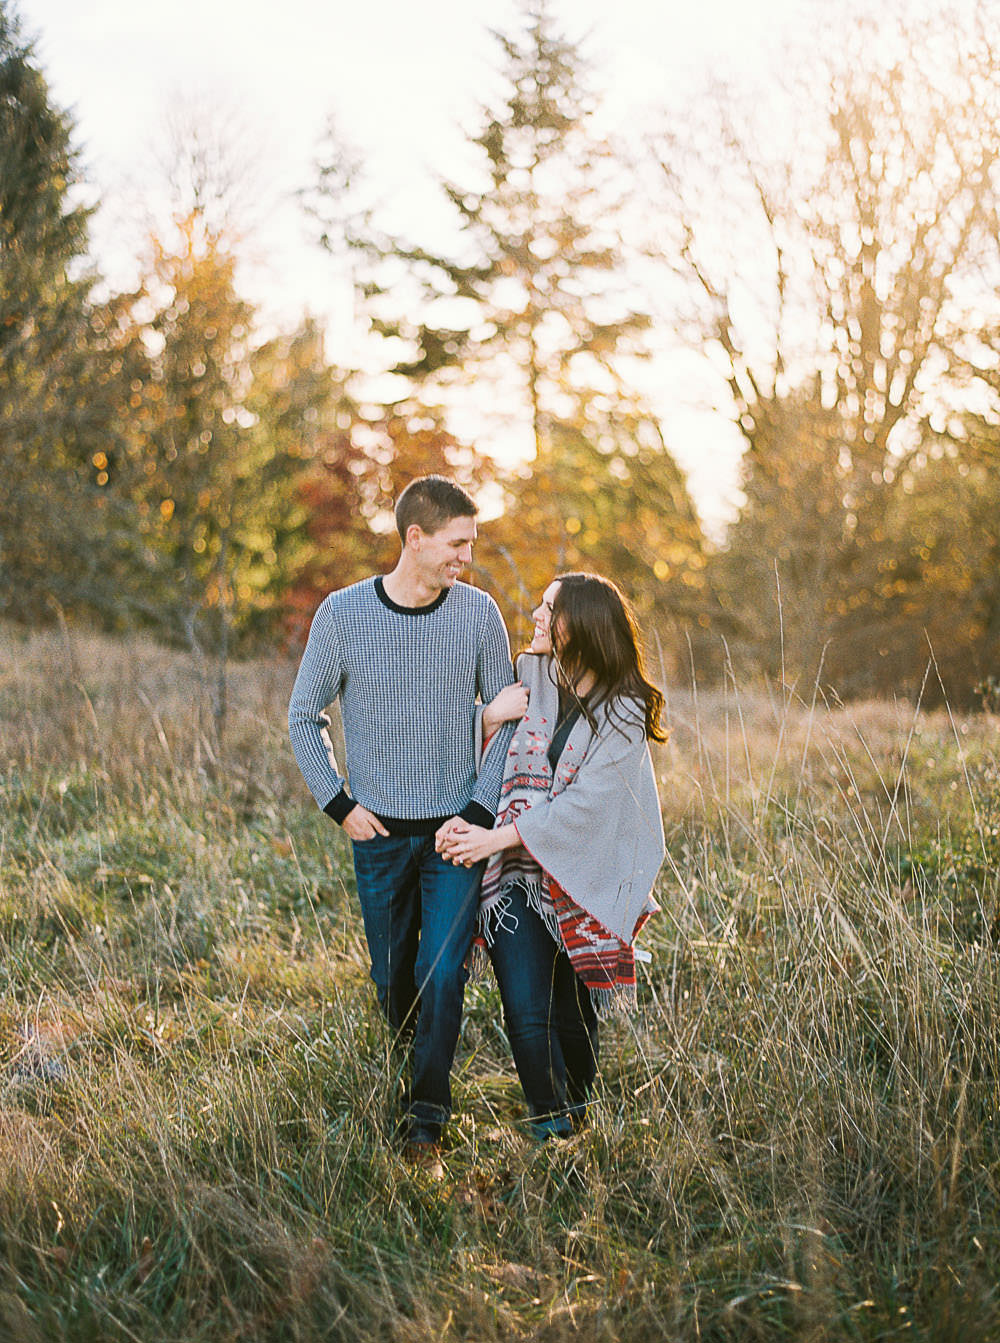 Fall Discovery Park Engagement Session Ideas by Seattle Wedding Photographer Anna Peters